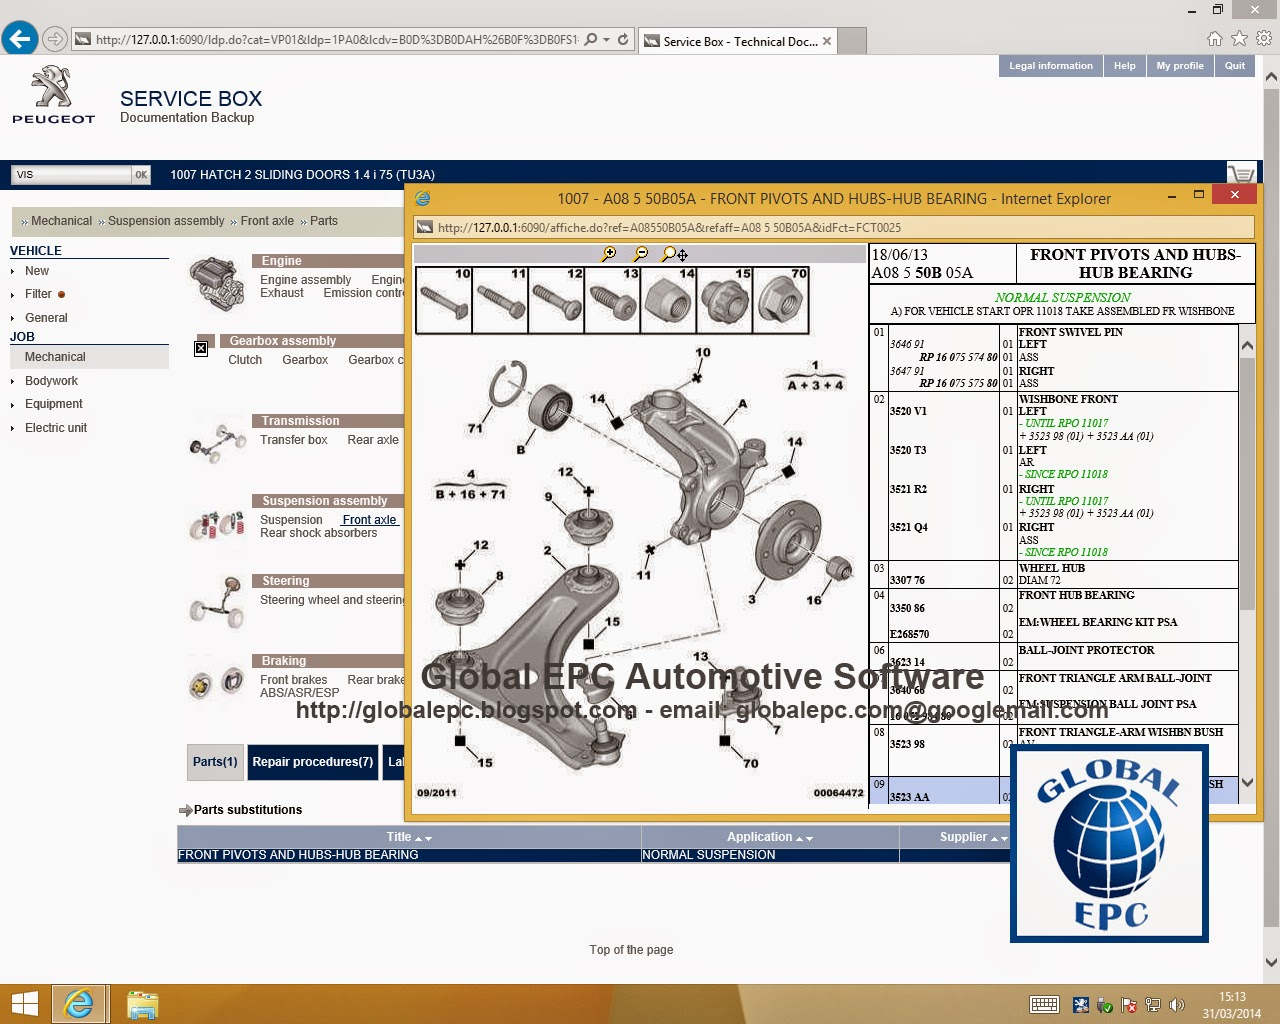 Automotive Wiring Diagram Software Wall Lights Global Epc Peugeot Service Box 11